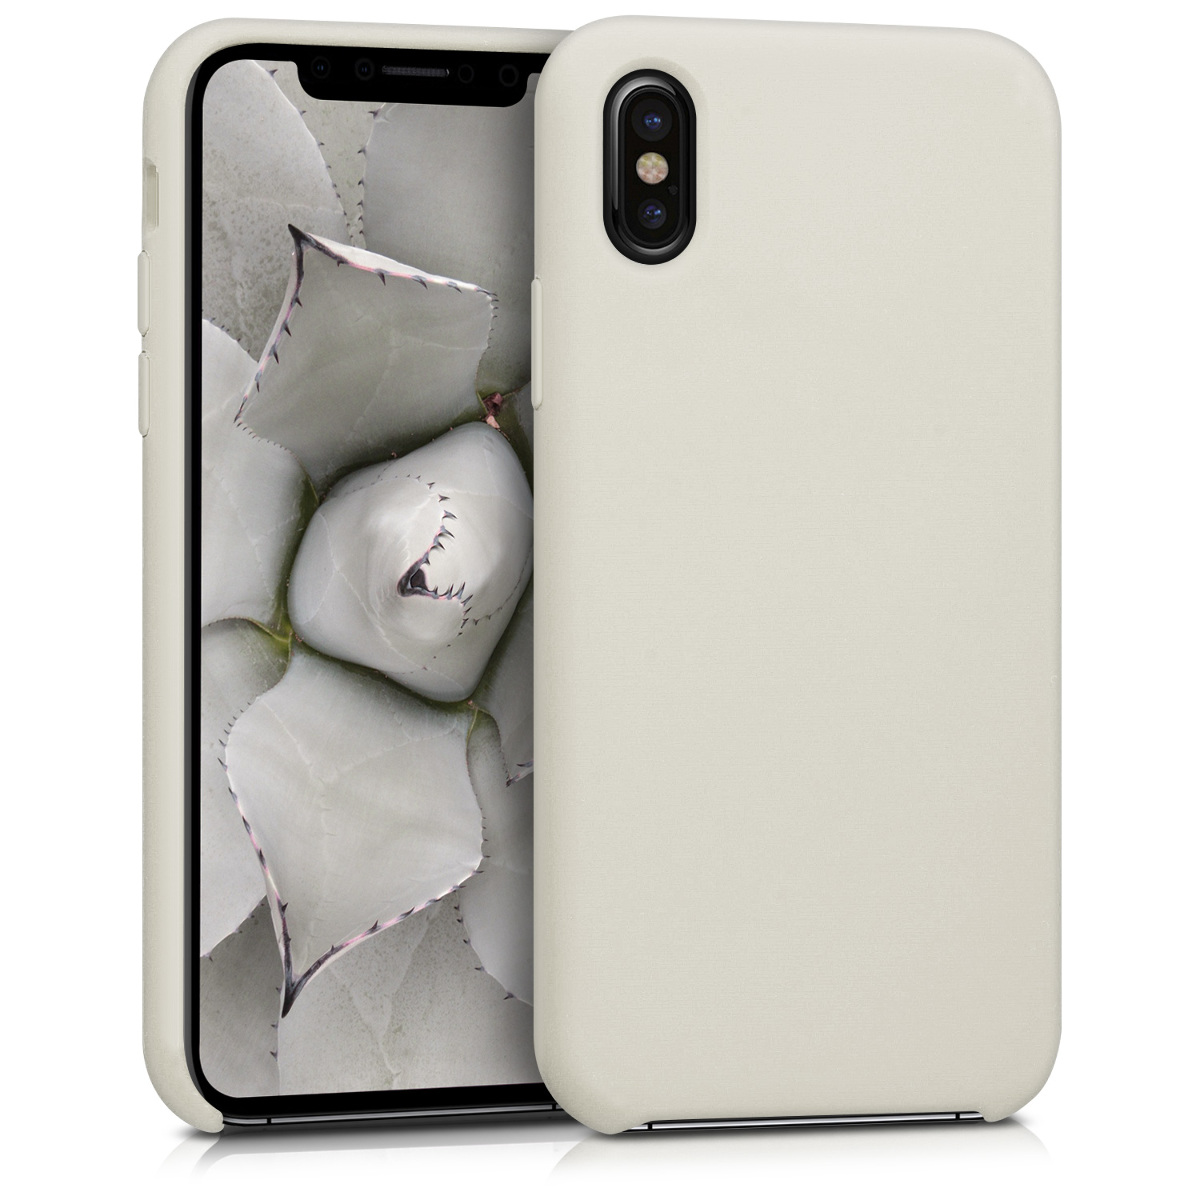 KW Θήκη Σιλικόνης Apple iPhone X - Soft Flexible Rubber Protective Cover - Beige (42495.11)